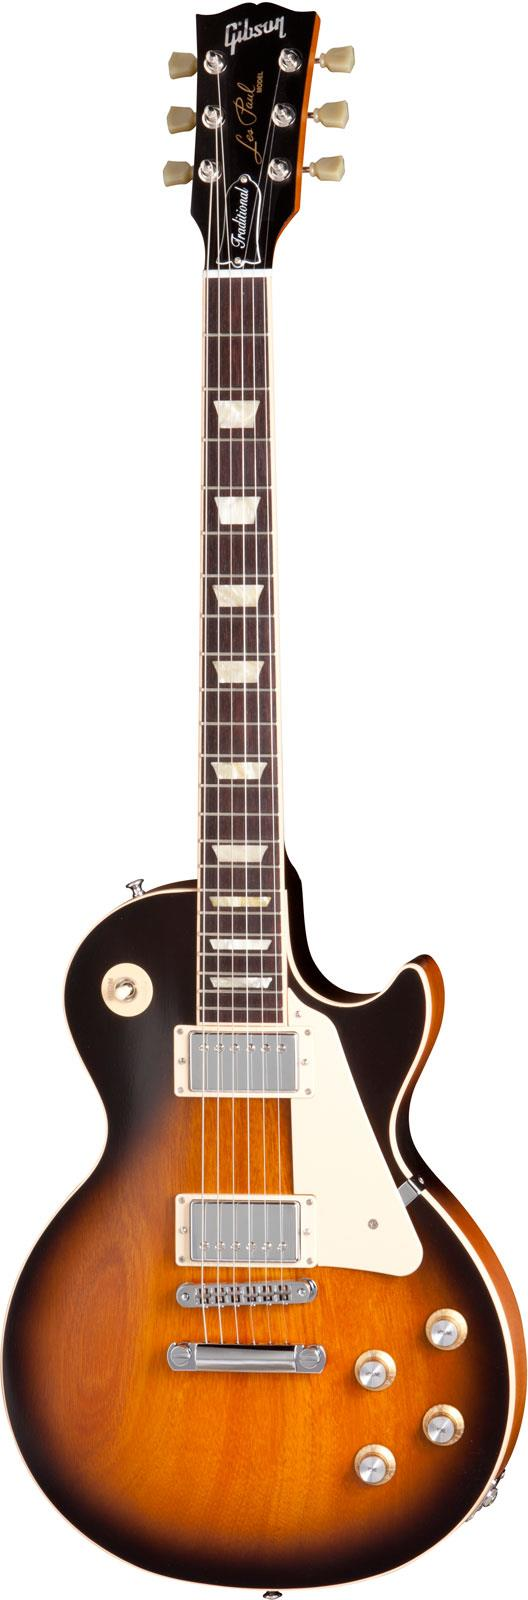 Her hidden Gibson les paul vintage mahogany review brunette with